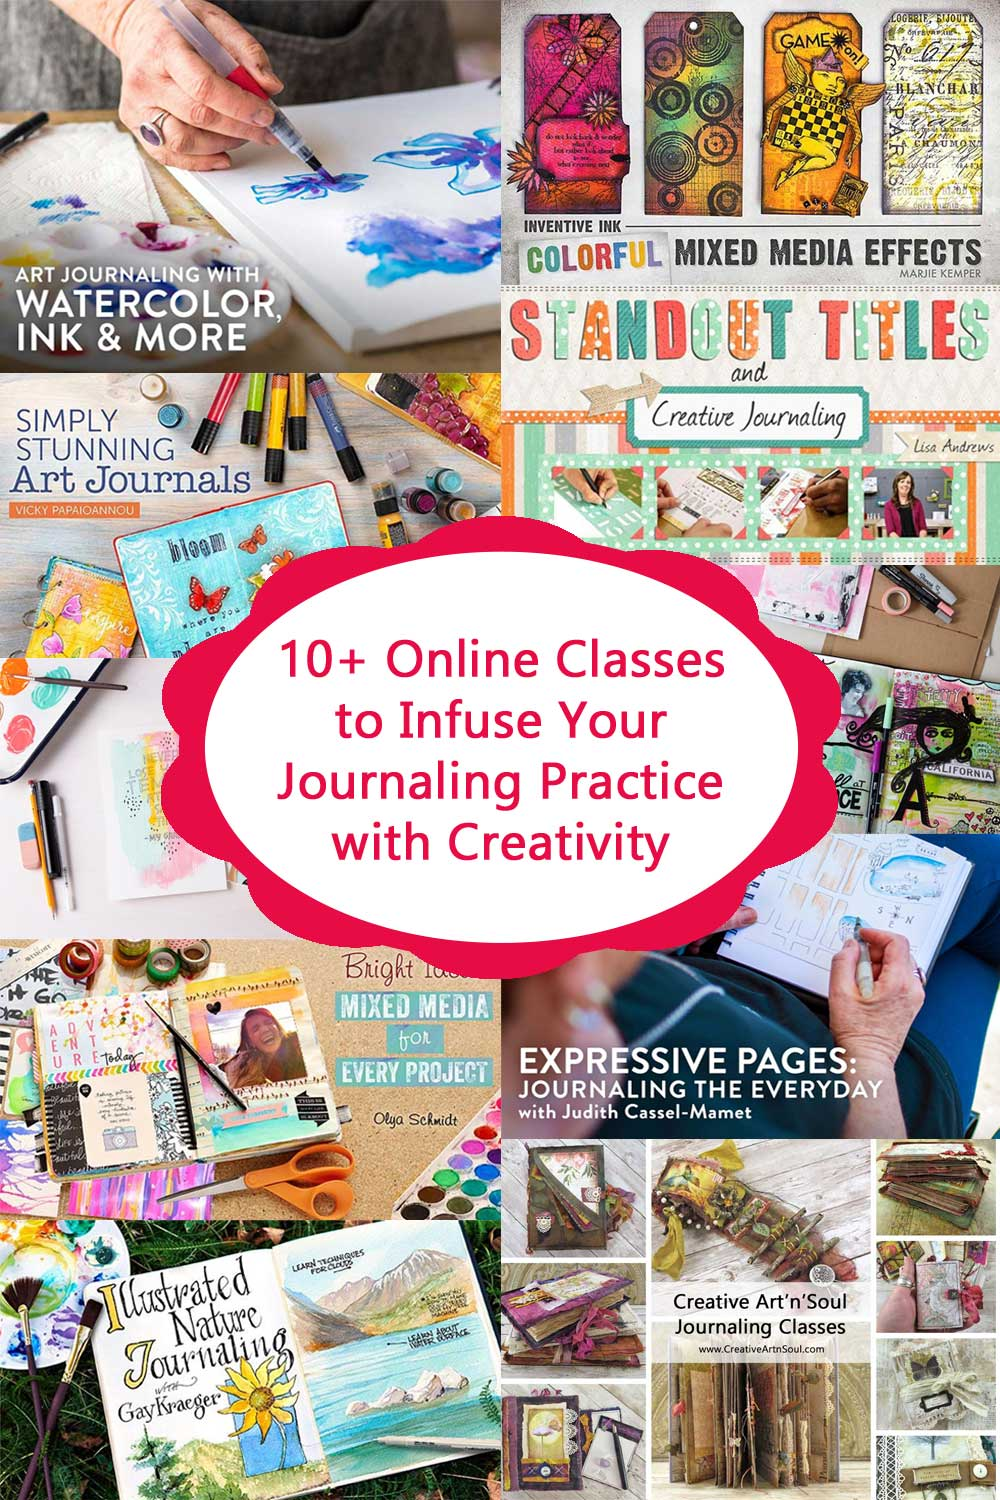 Online Classes to Infuse Your Journaling Practice with Creativity